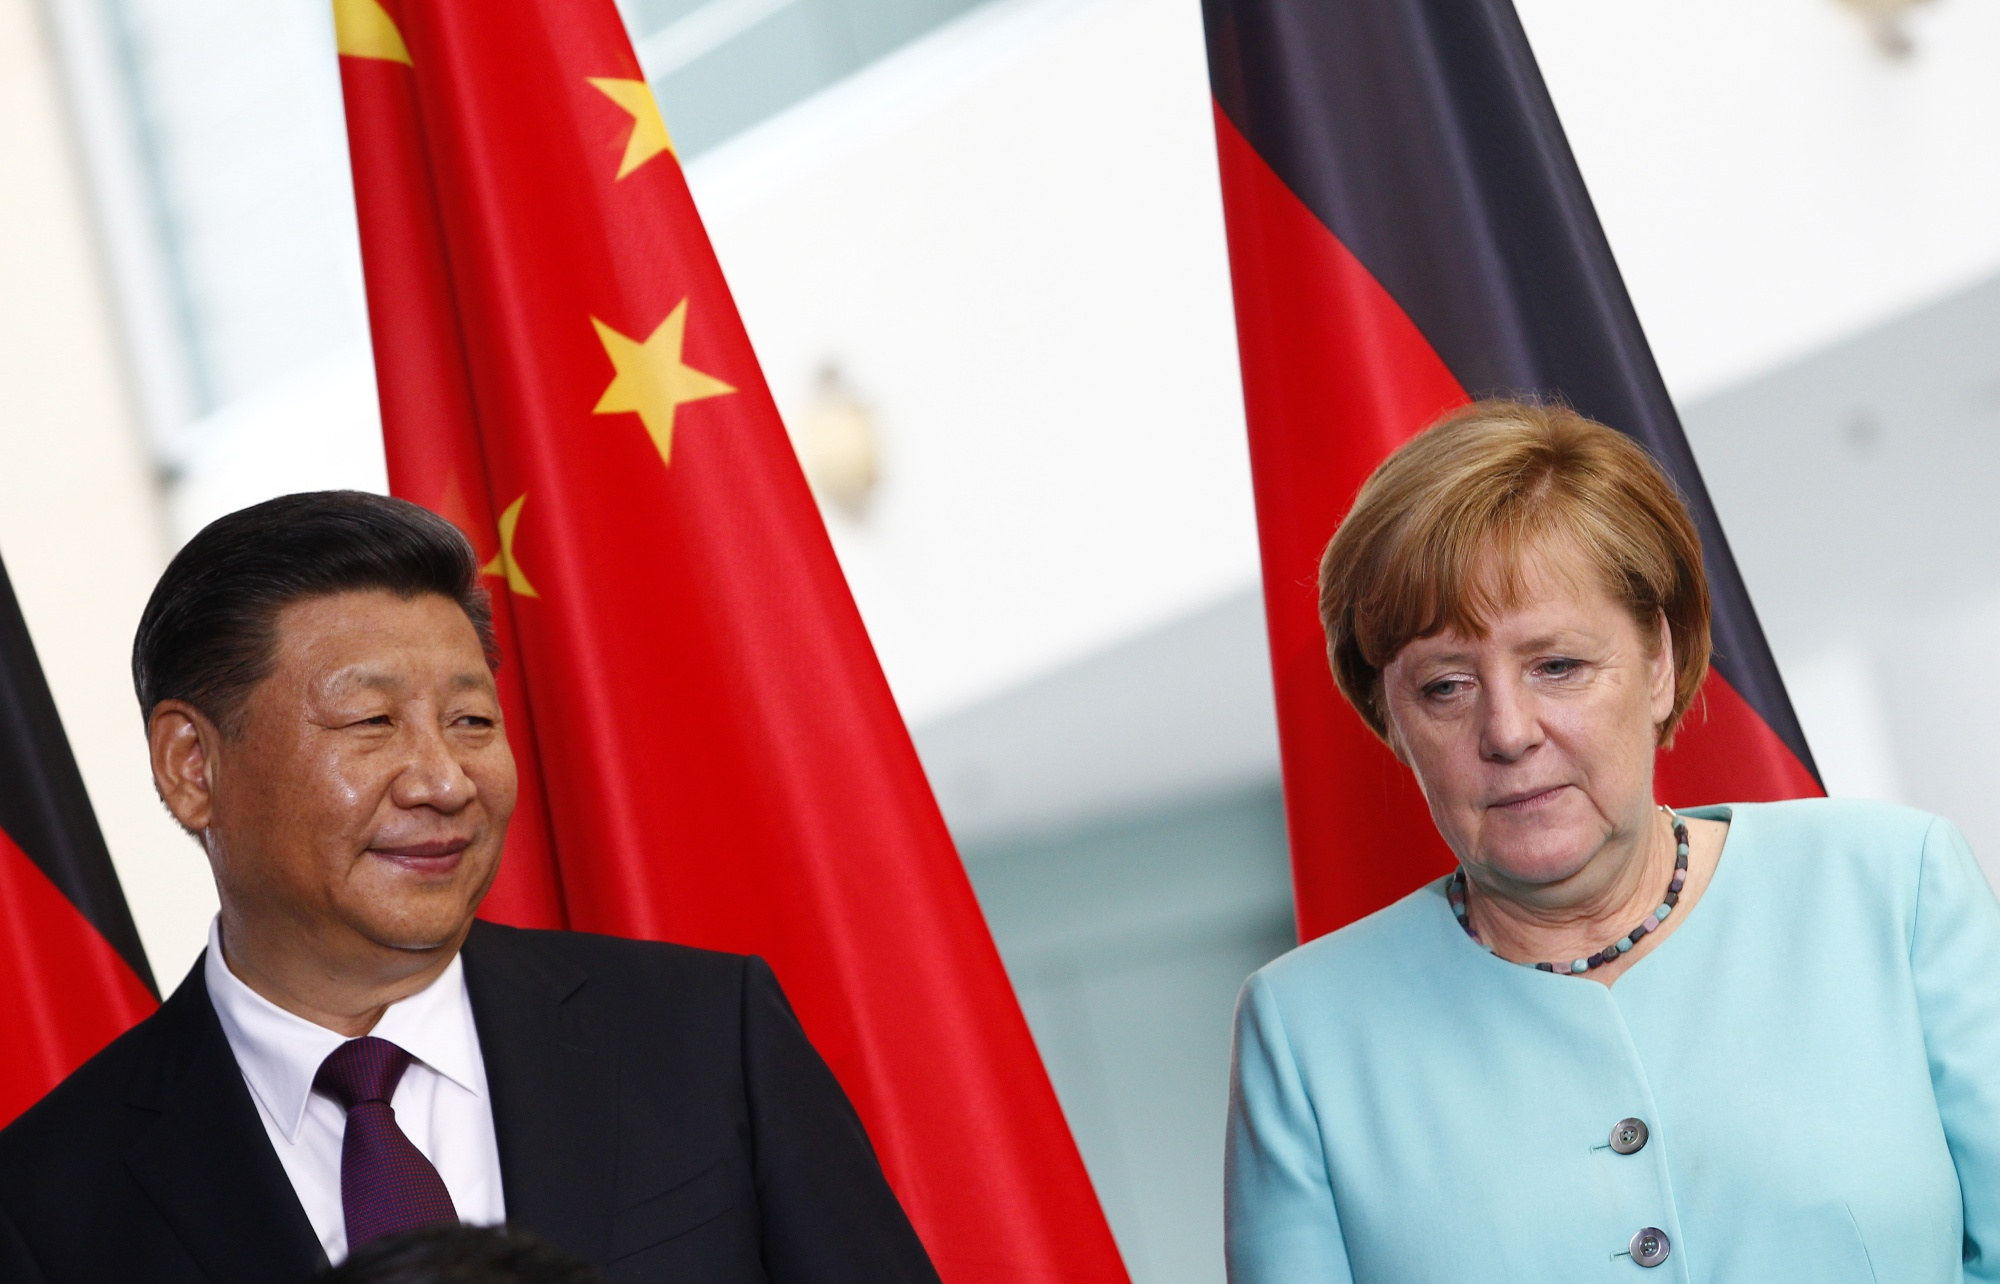 Germany Is a Flashpoint in the U.S.-China Cold War